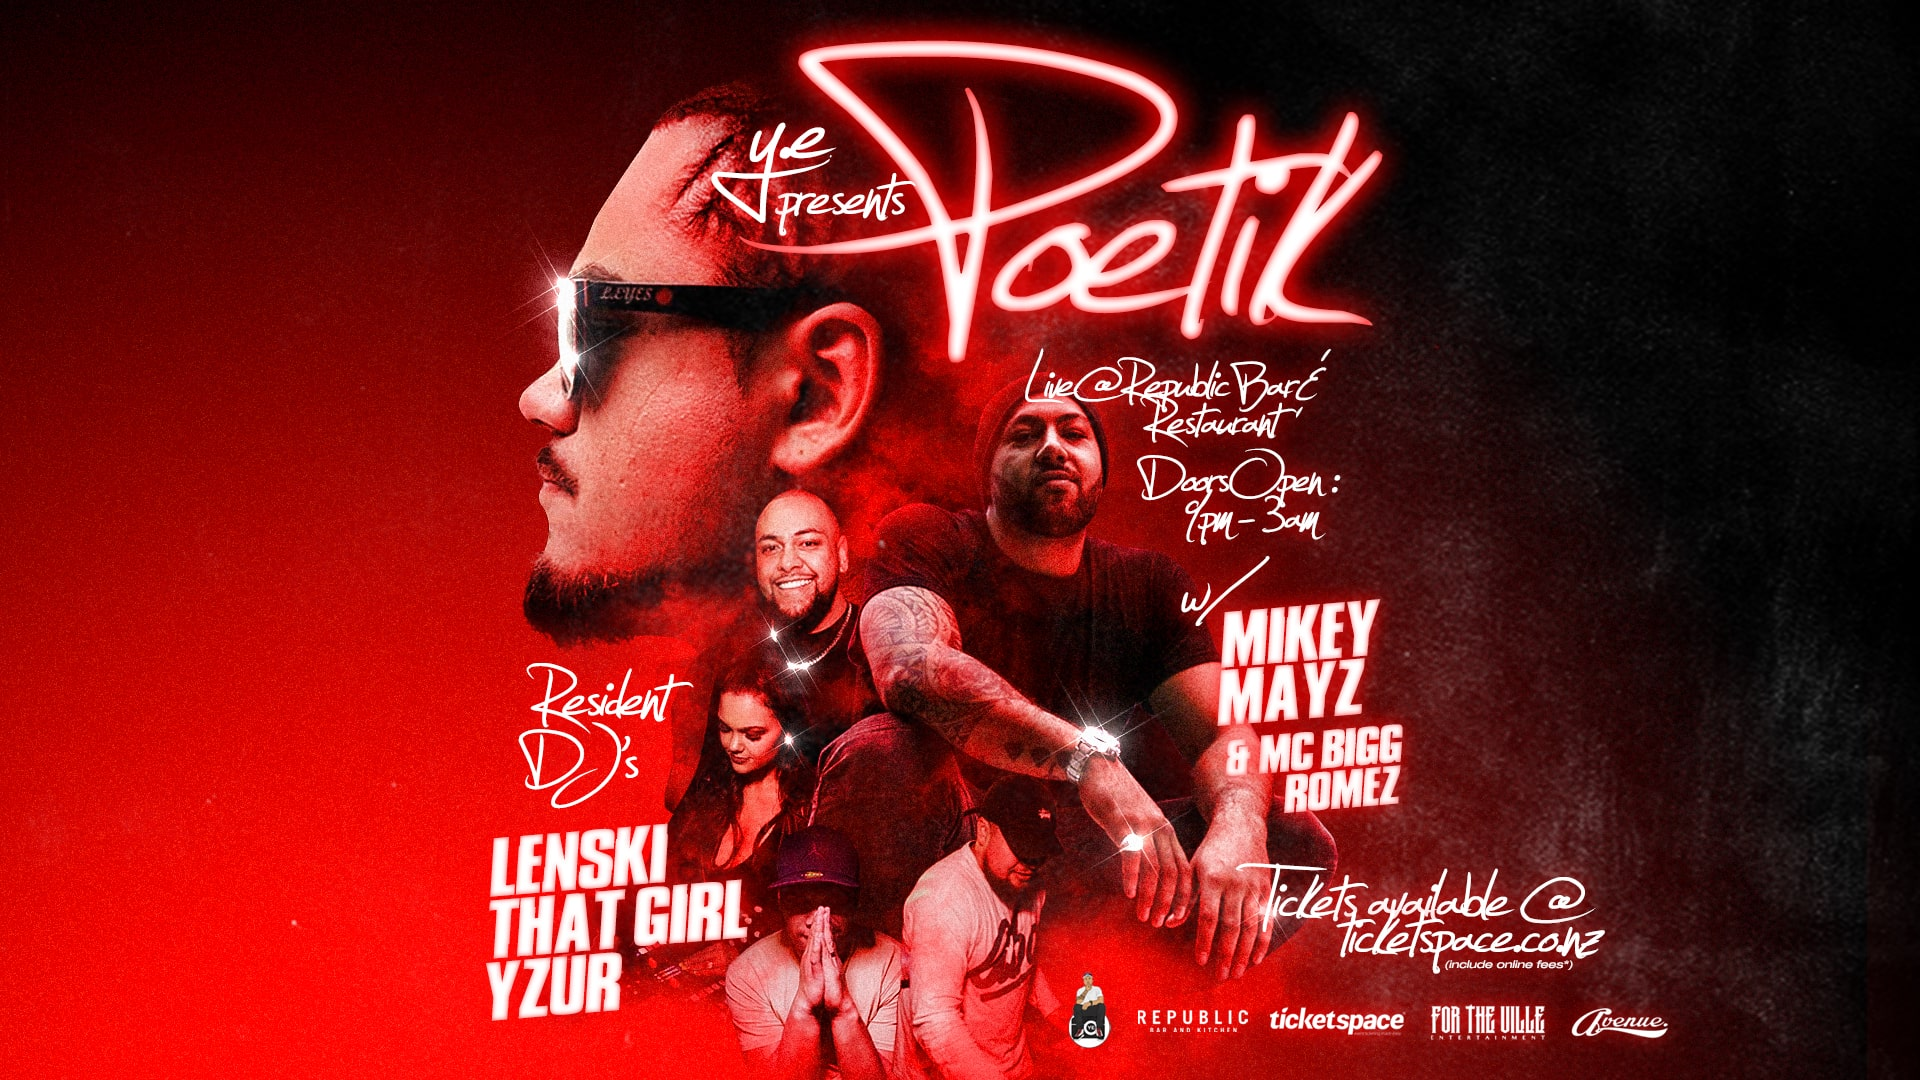 Tickets for POETIK live @ Republic Bar - Manukau in Auckland from Ticketspace